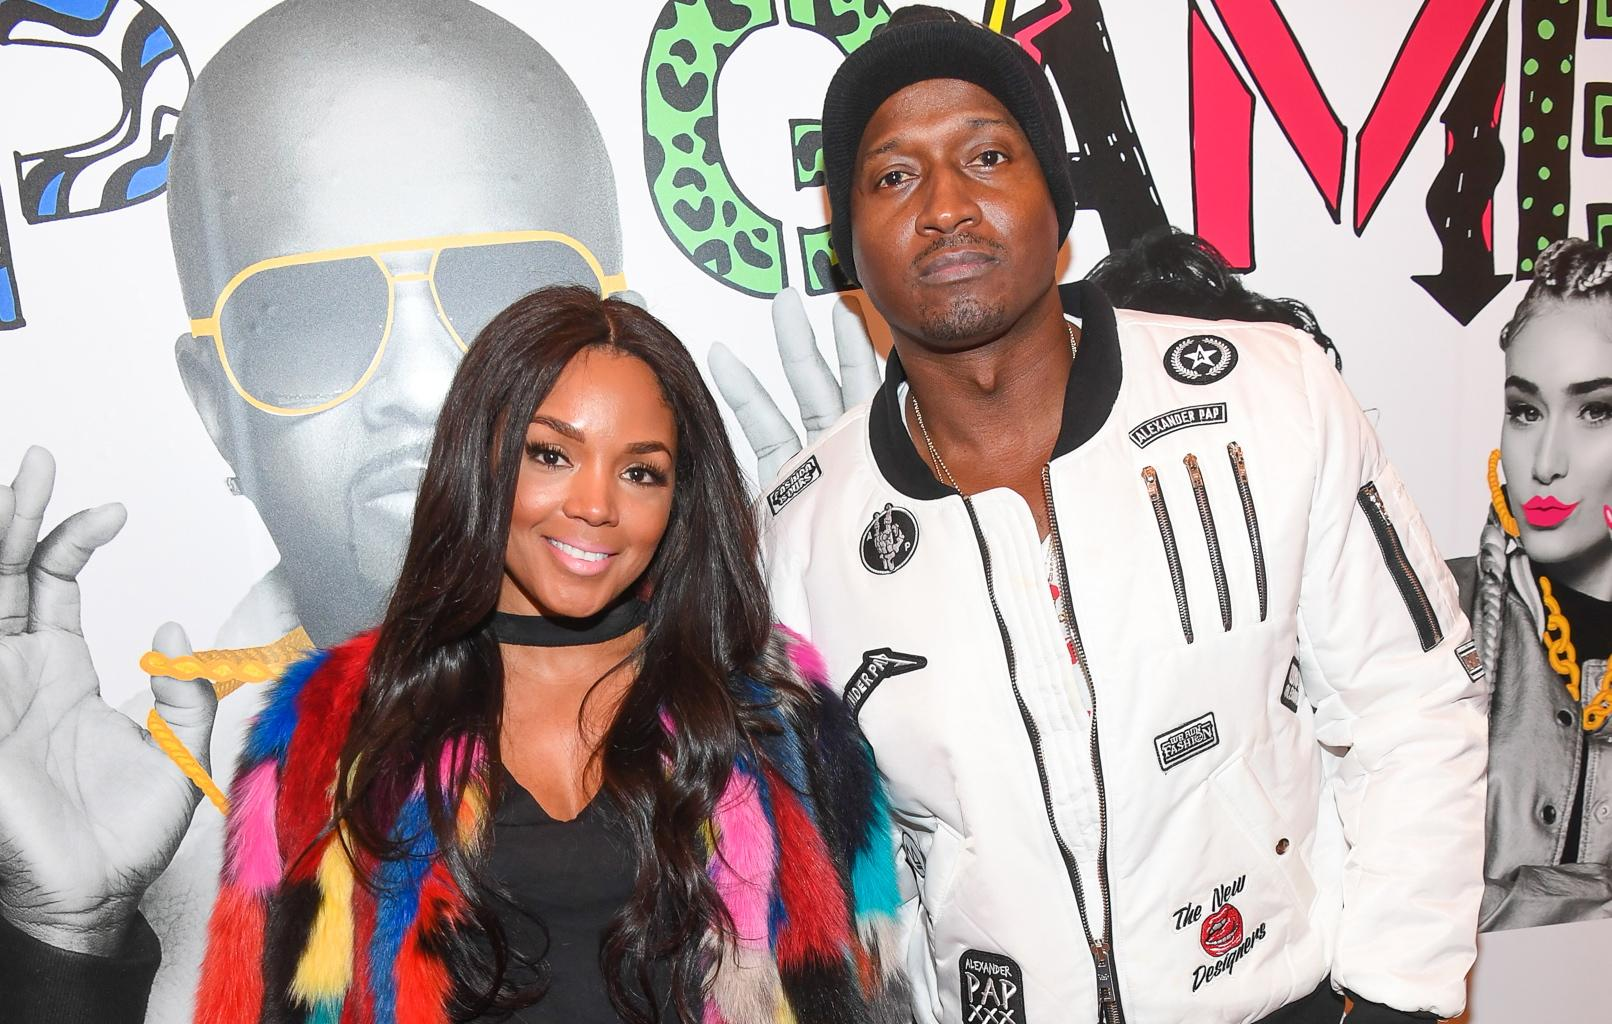 Rasheeda And Kirk Frost Are Compared To Beyonce And Jay-Z By Fans Who Call Them Soulmates